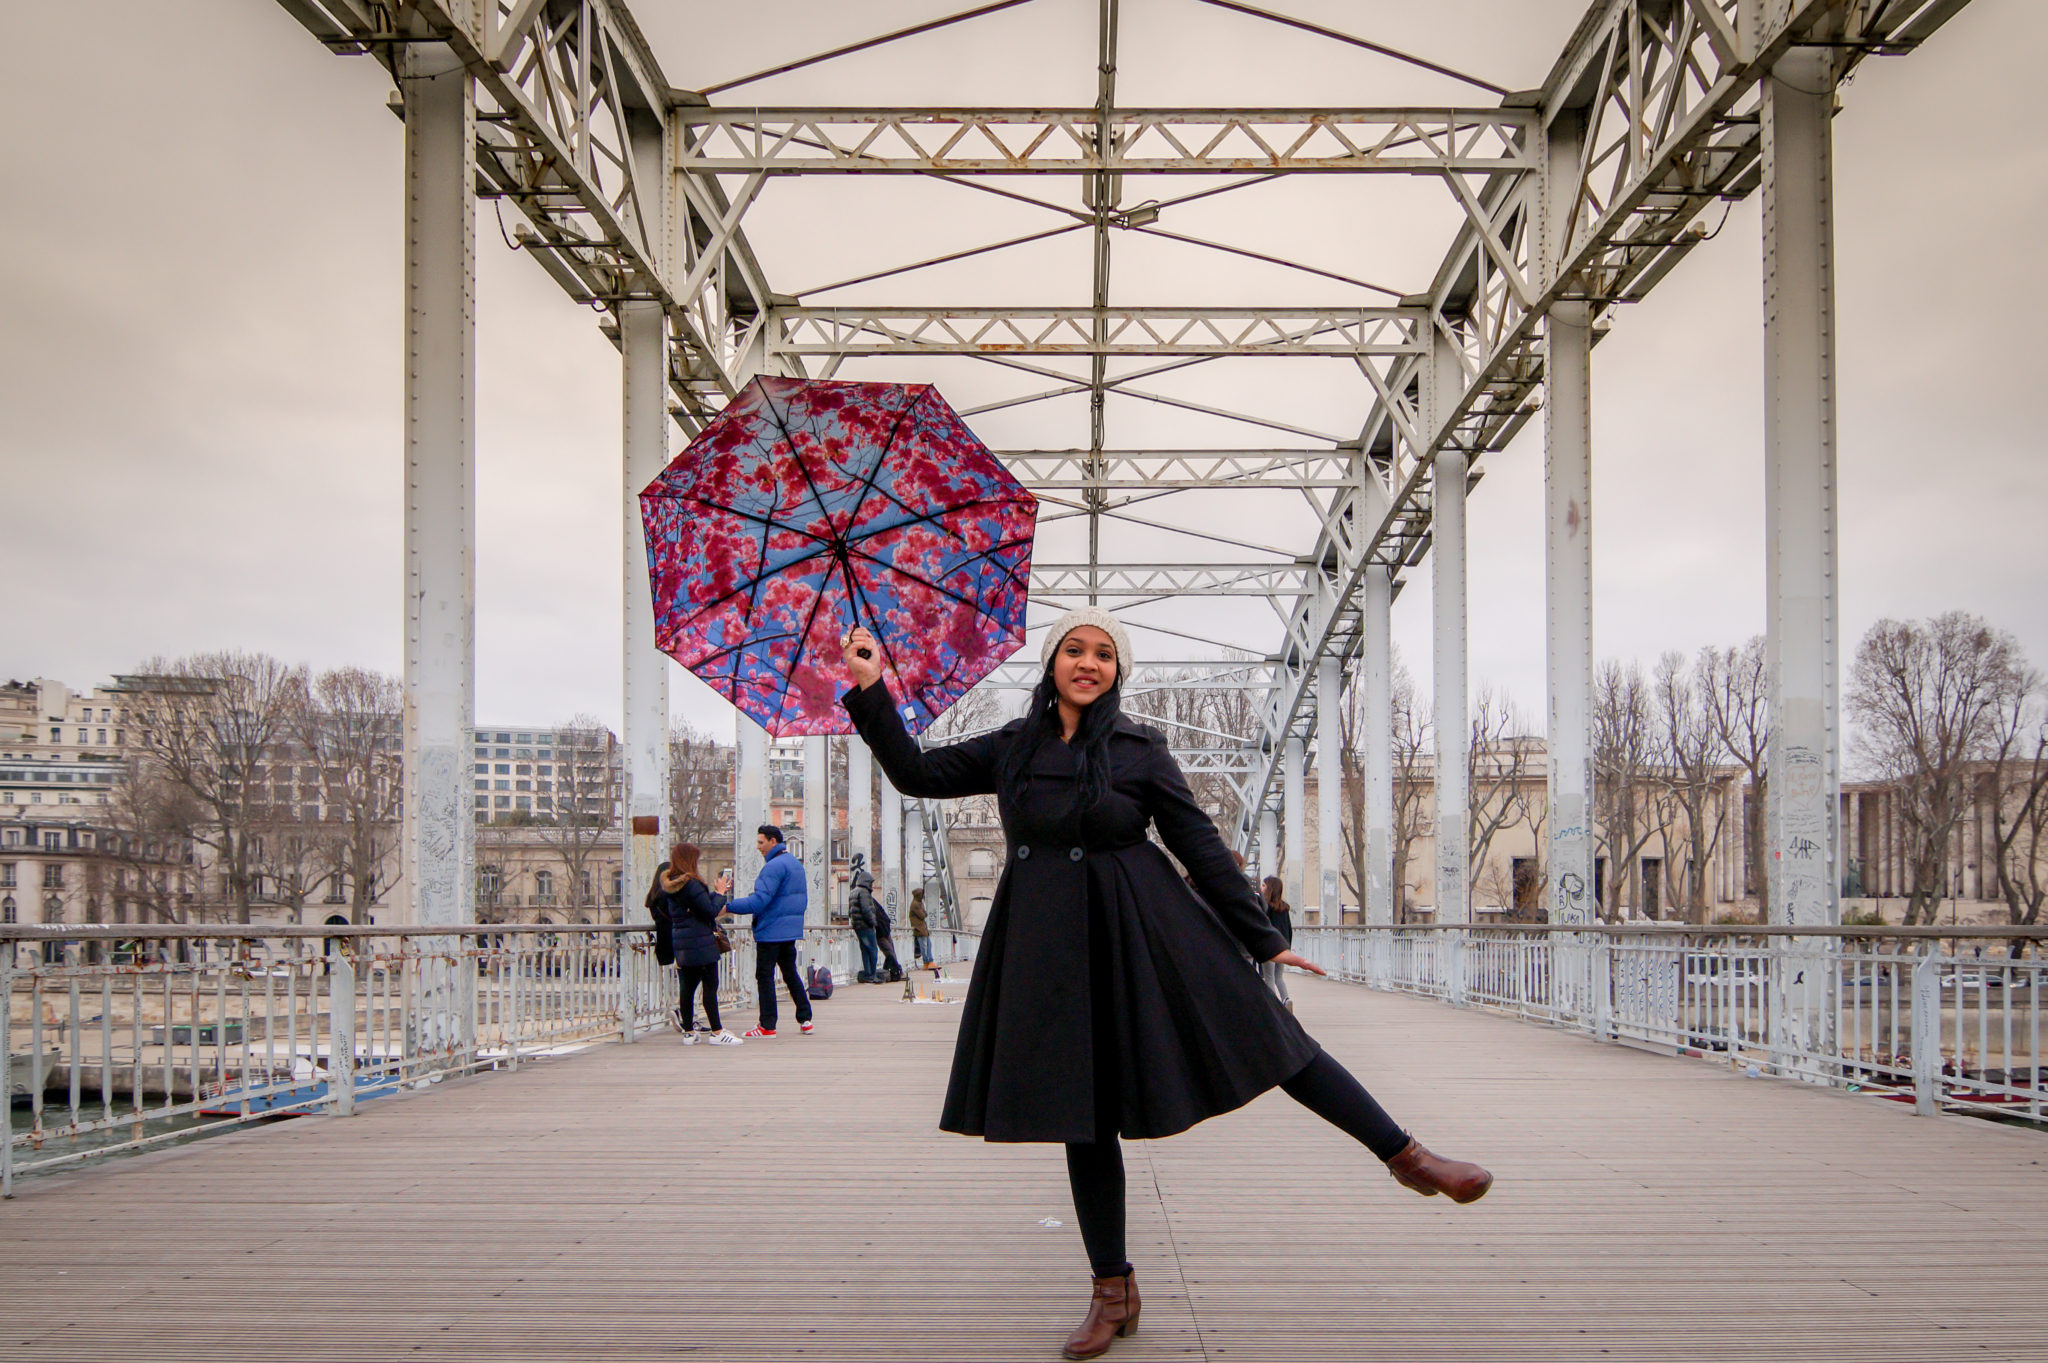 Hemaposesesvalises_Happysweeds_Cherry_Umbrella_manteau_max&co_winter_paris_blog_mode_singing_inthe_rain